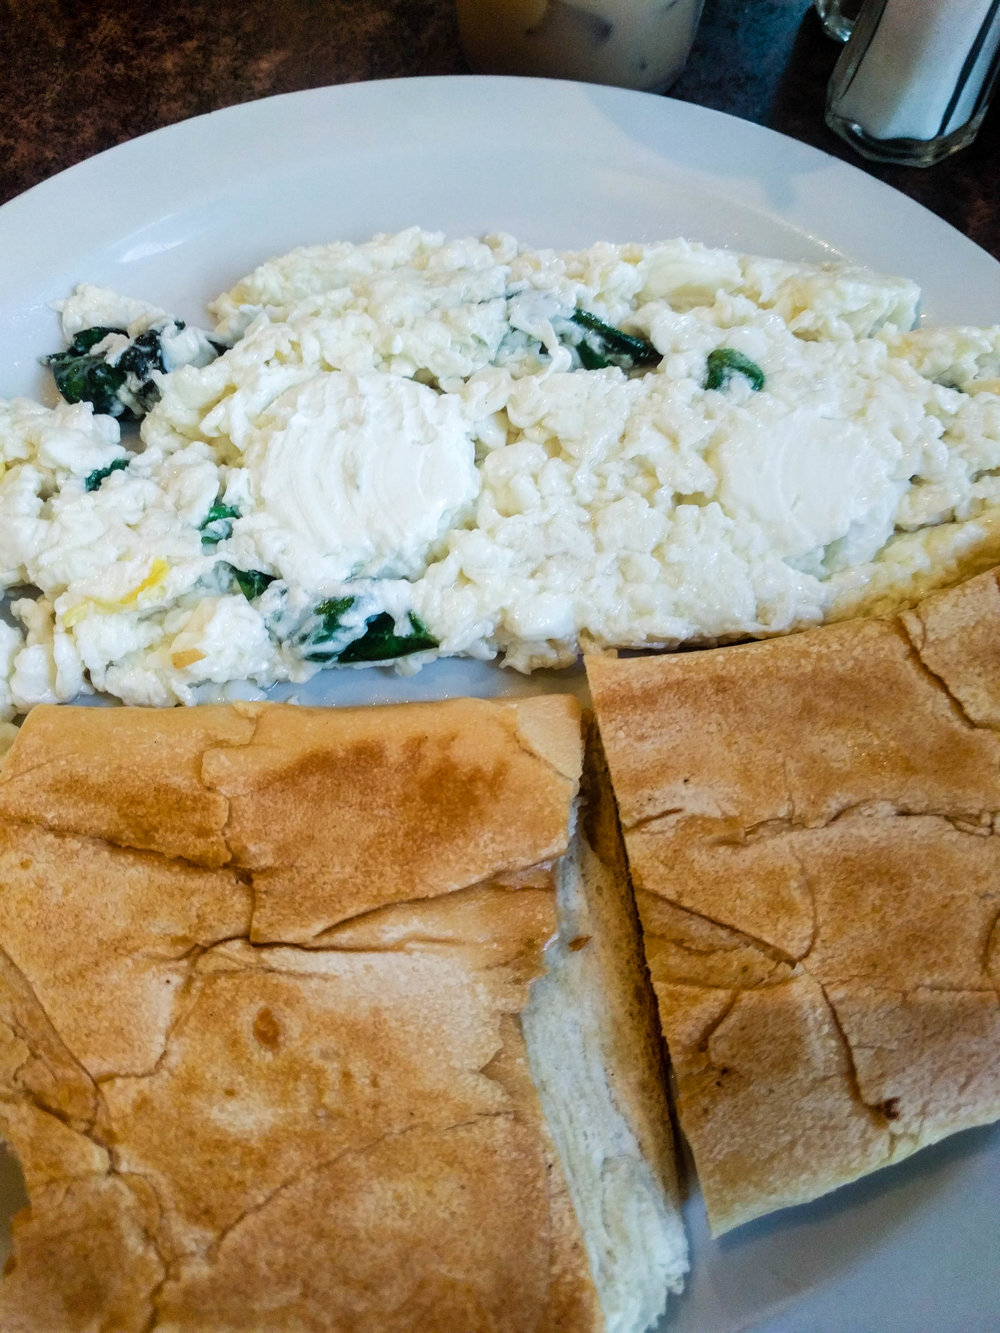 Baguette with egg white scramble. Delicious.